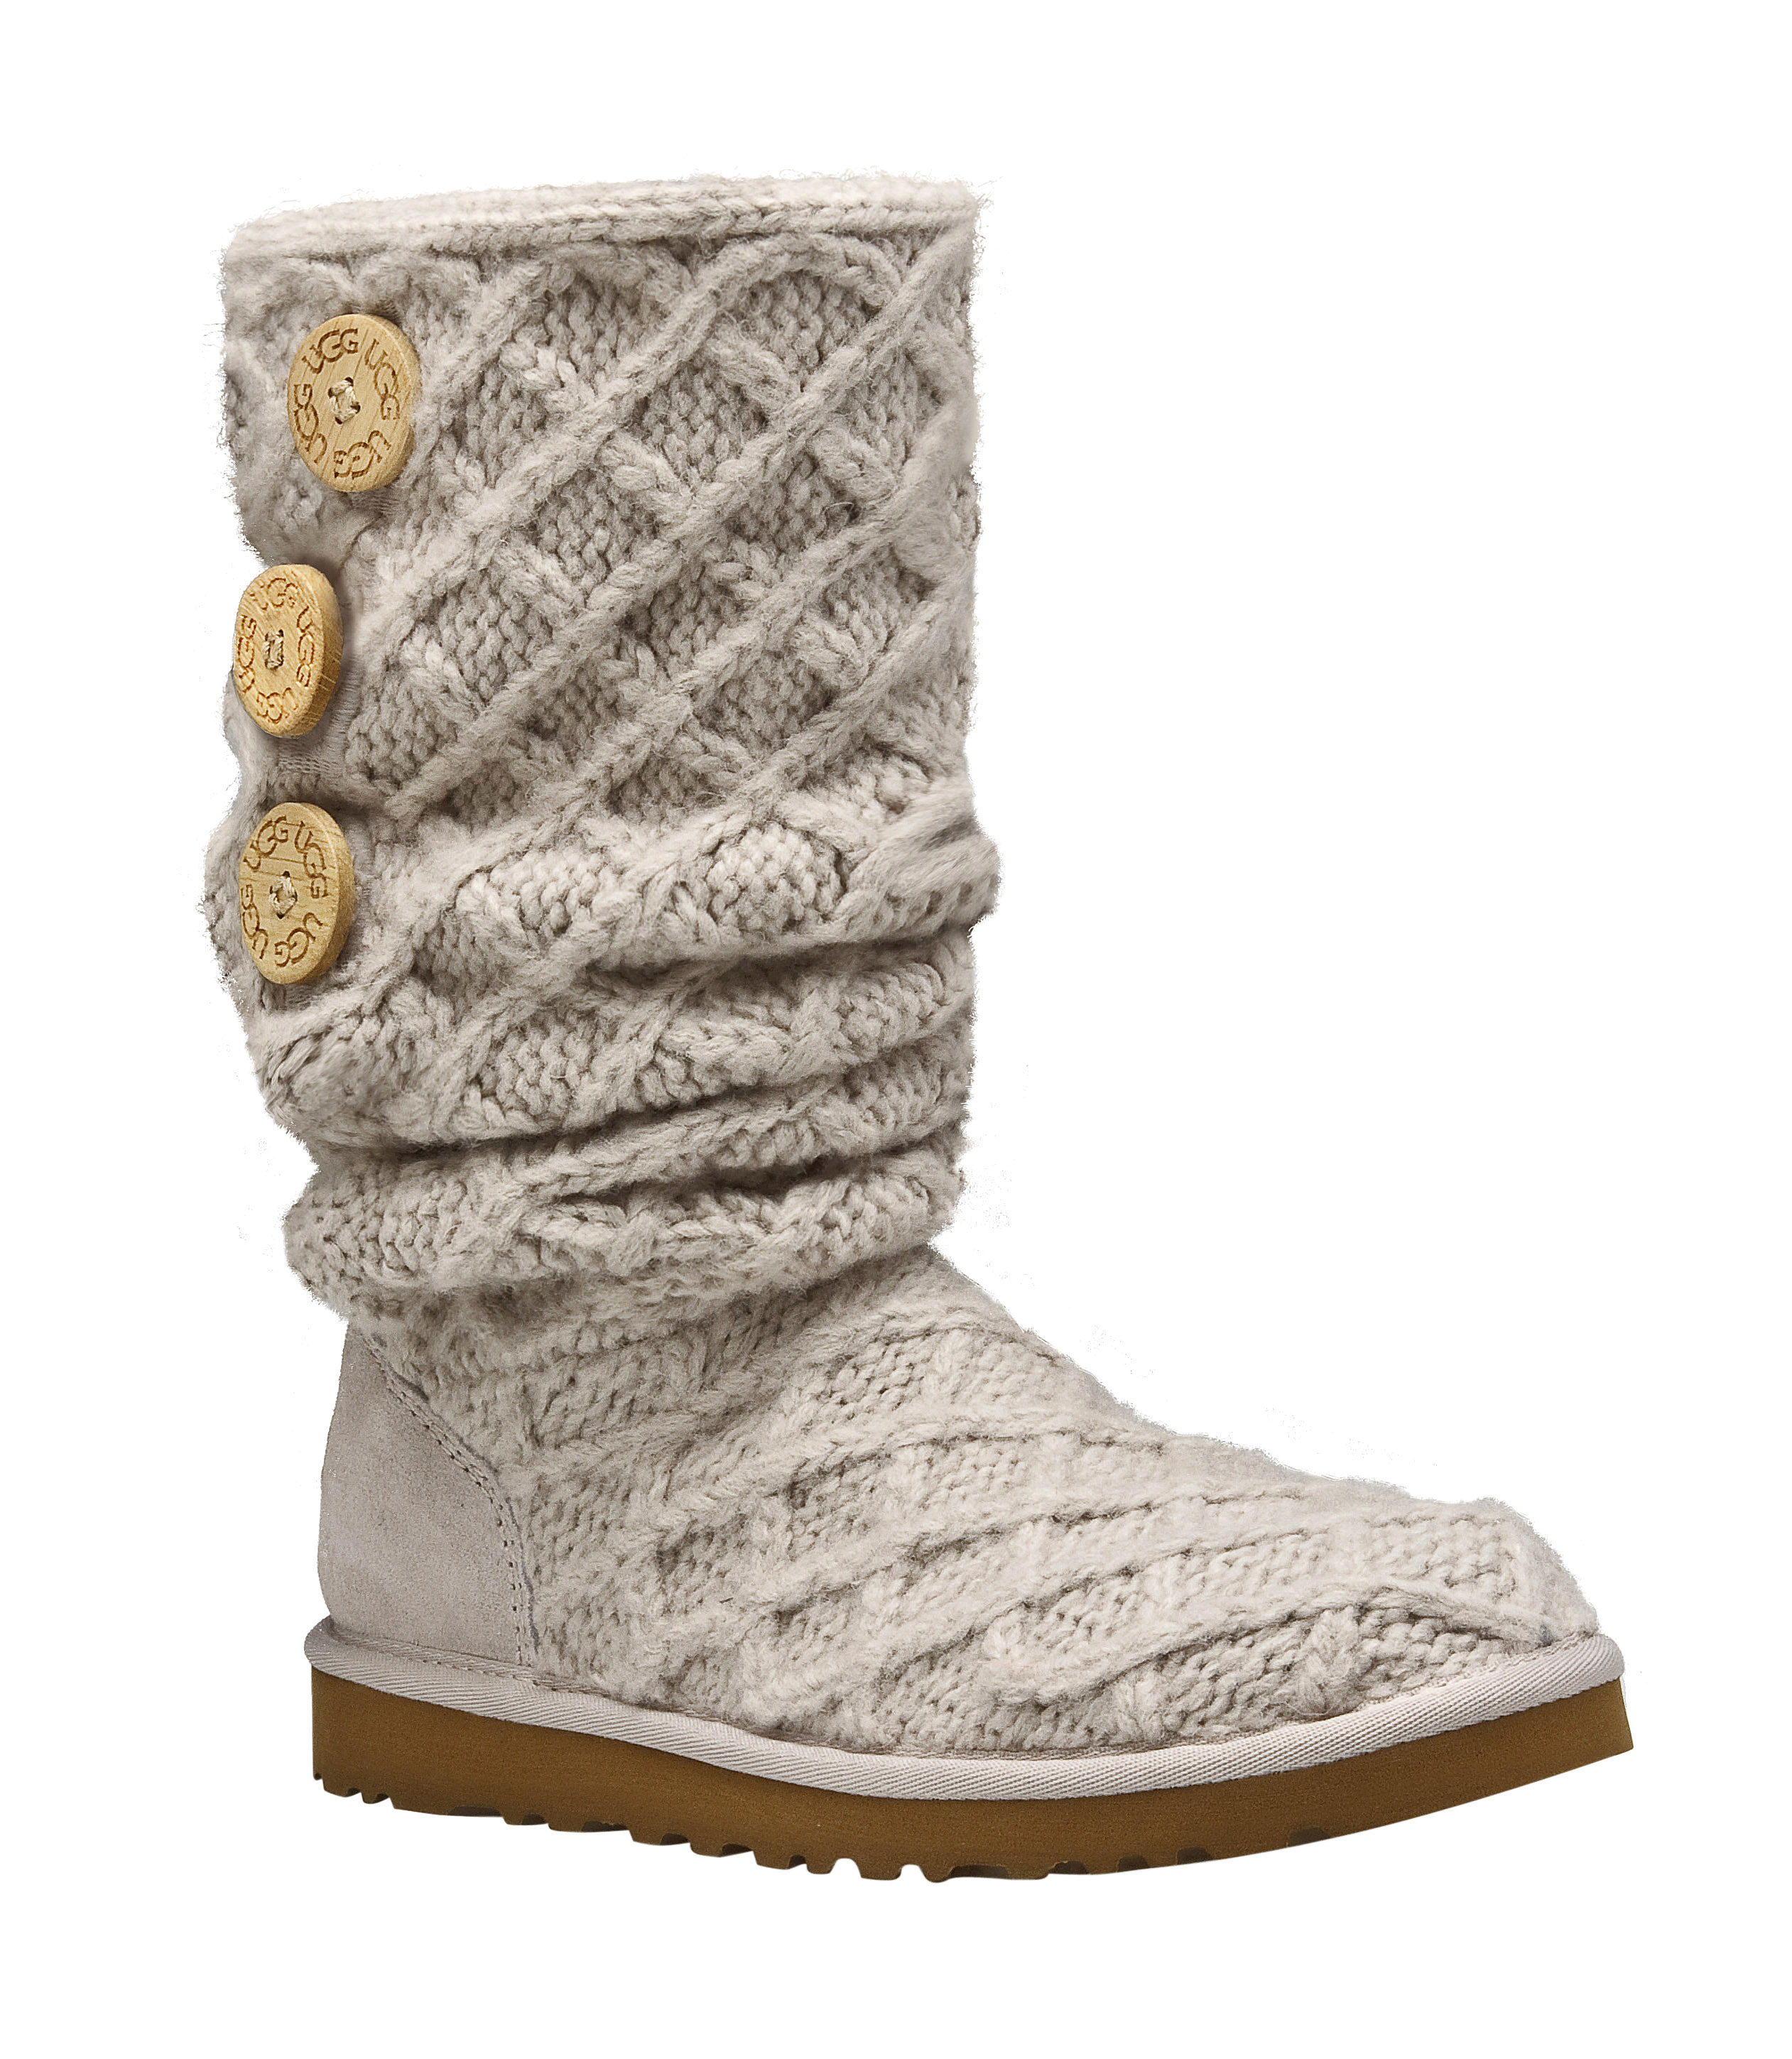 How To Wear Ugg Knit Boots Mount Mercy University